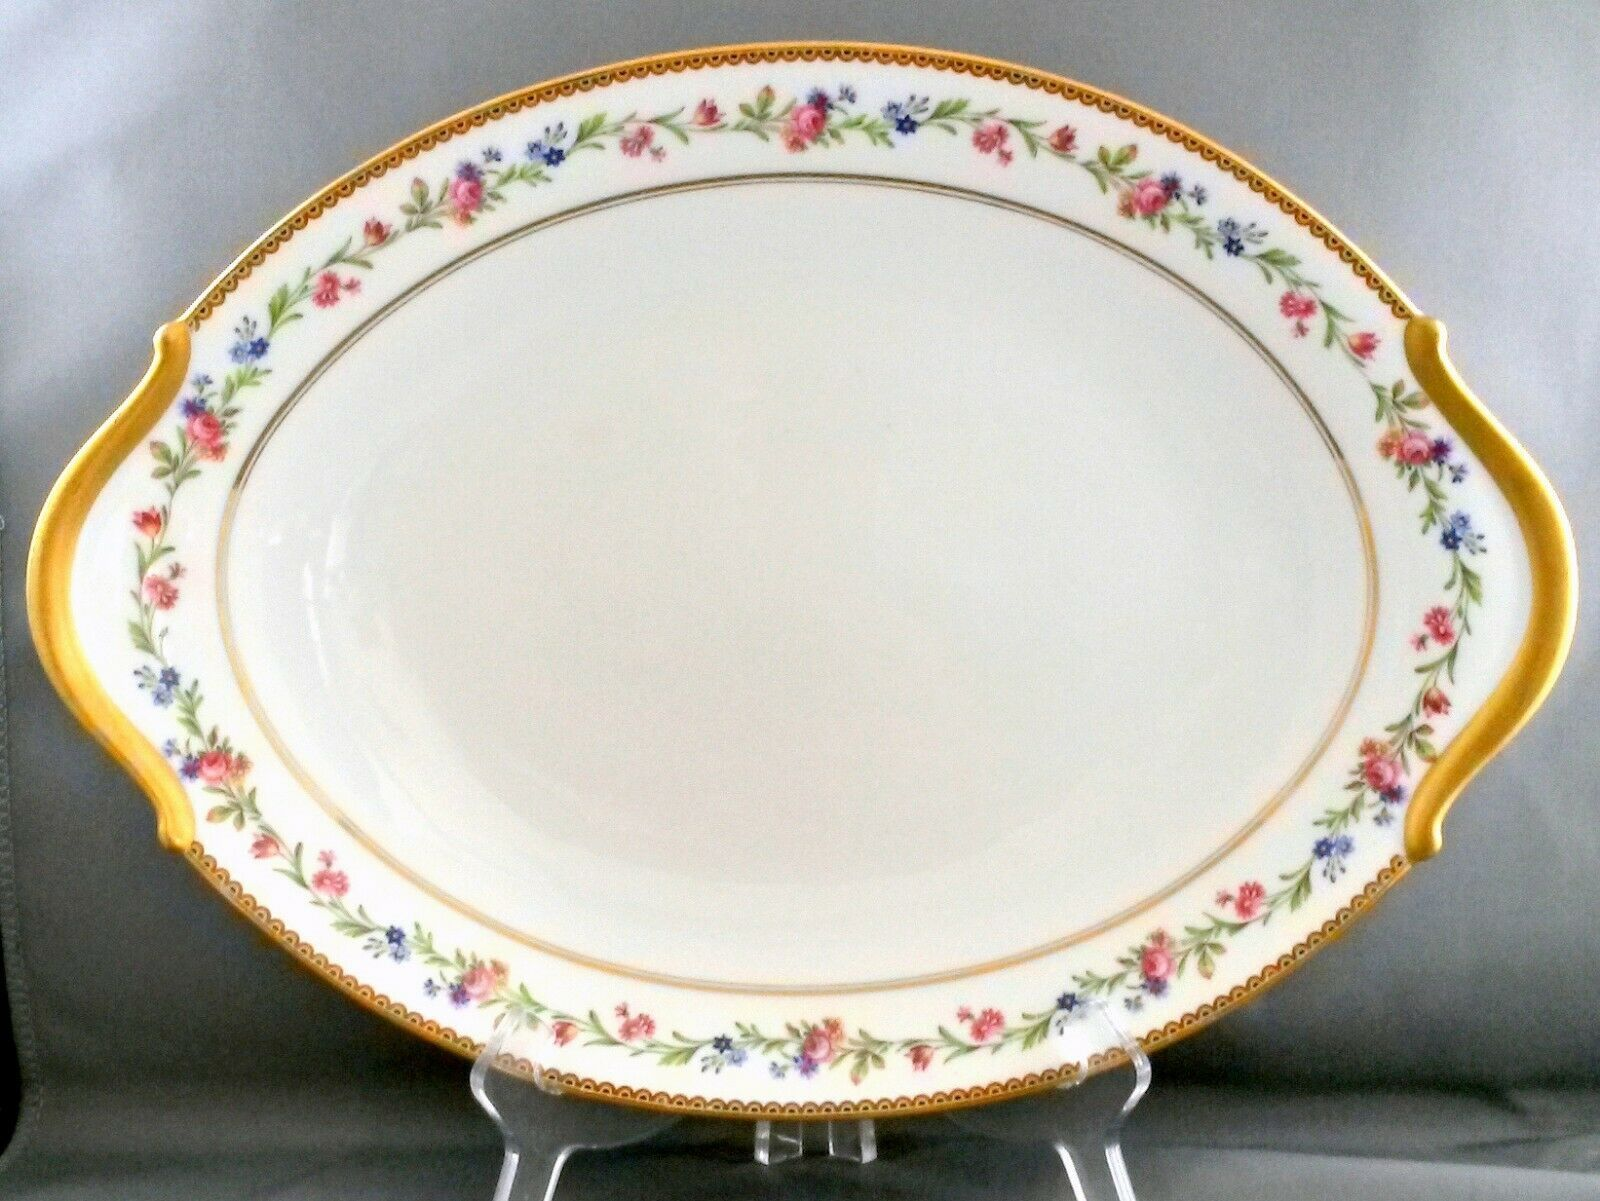 Primary image for Raynaud Country Flowers Oval Platter Limoges Porcelain White Floral Gold 16""